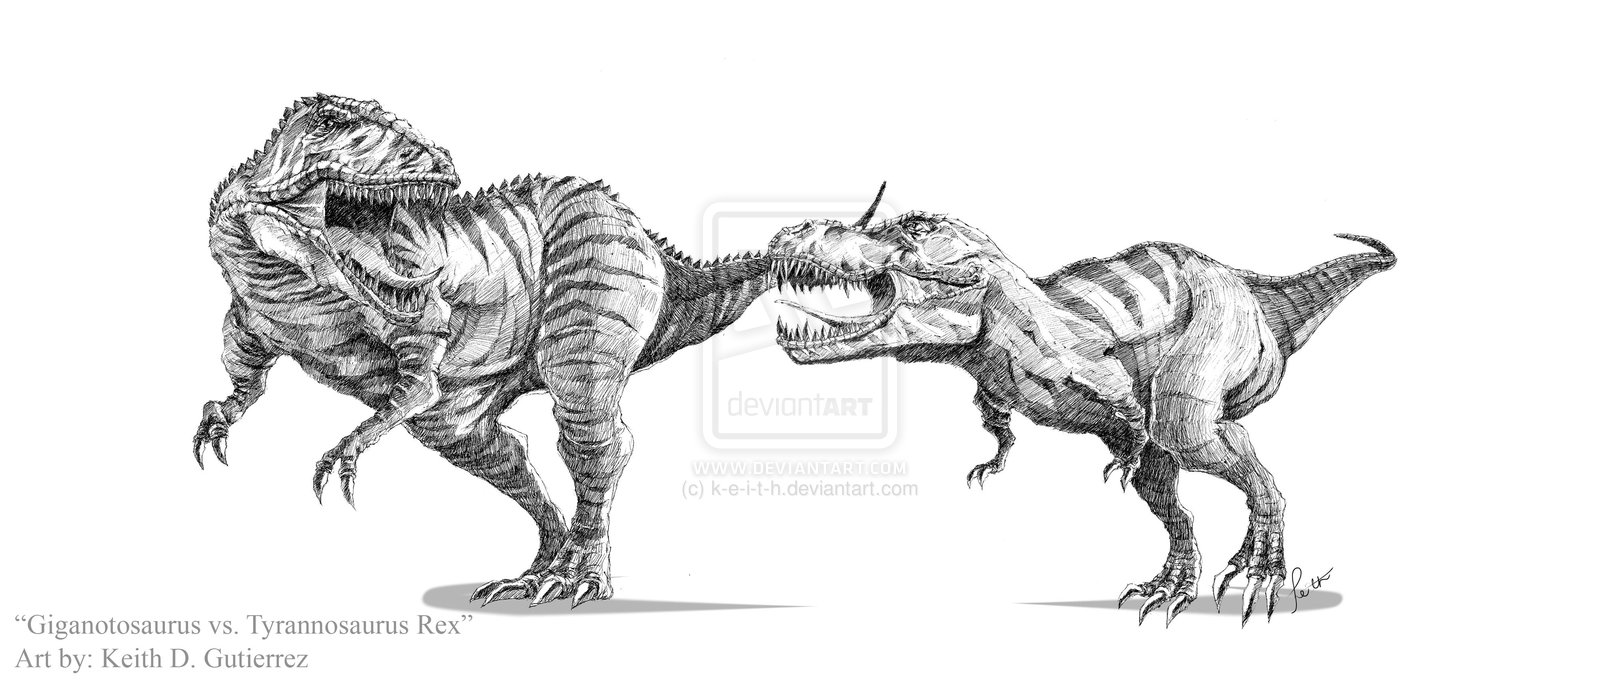 carcharodontosaurus coloring page - giganotosaurus heroes and villains fight club wiki